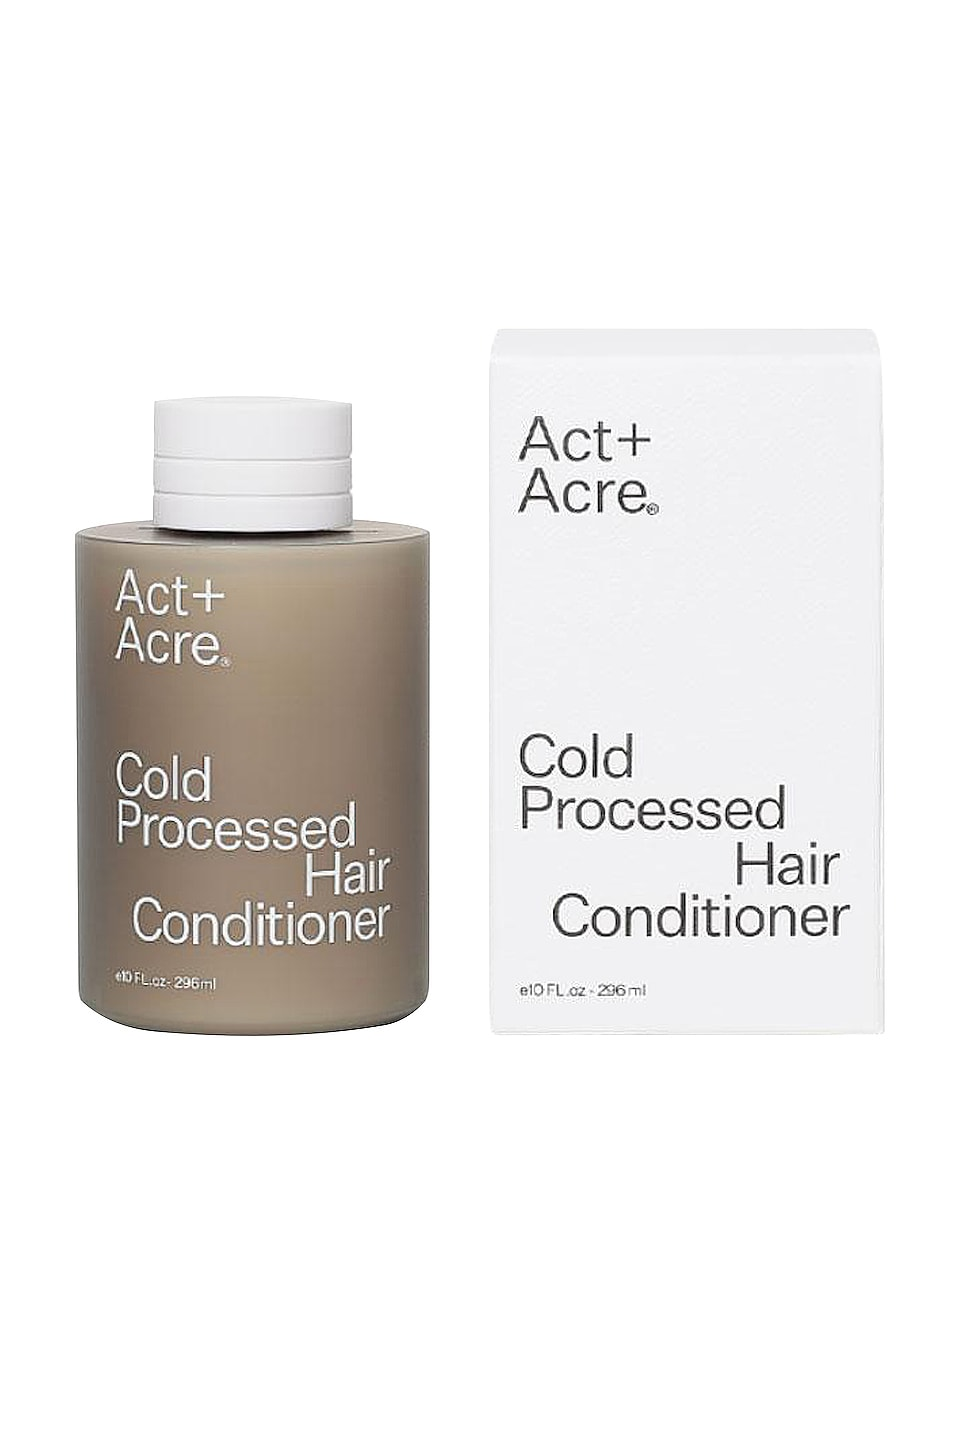 Act+Acre Cold Processed Hair Conditioner